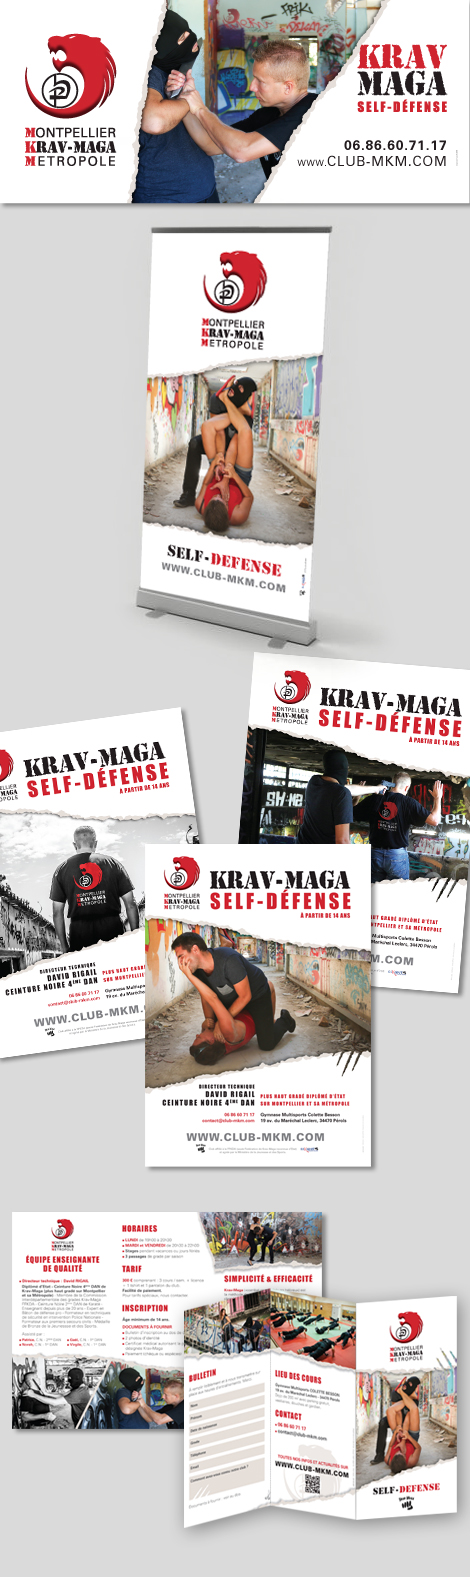 Club de Krav-Maga - Banderole, roll-up, affiches, dépliant du club MKM